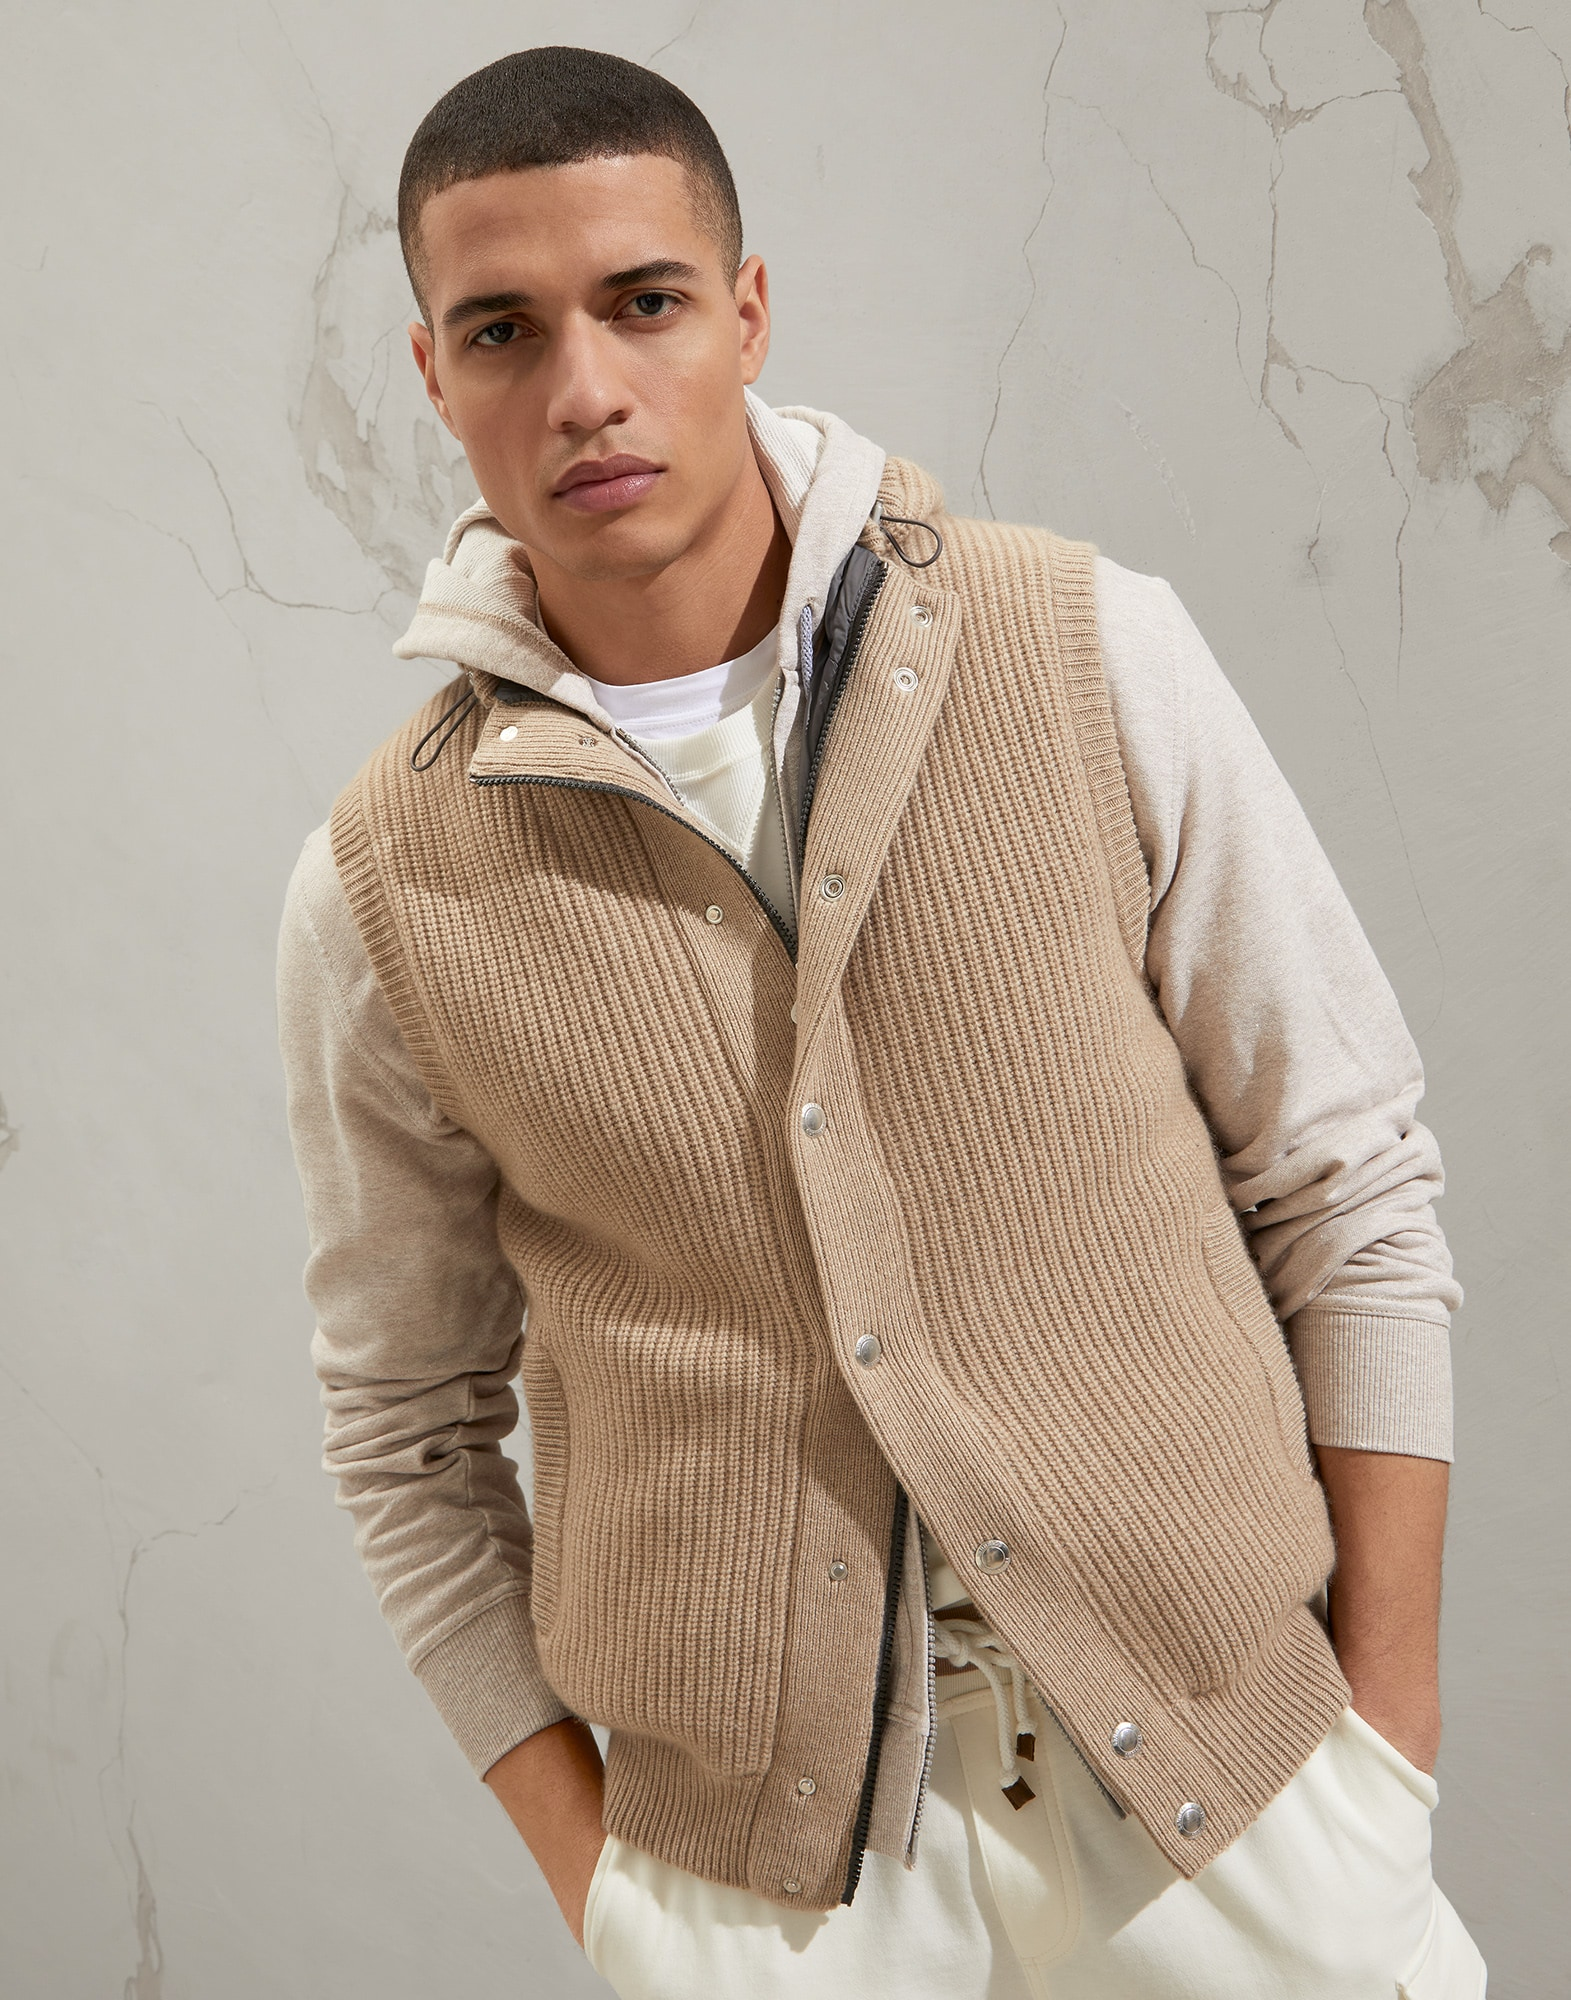 Knit Outerwear - Front view